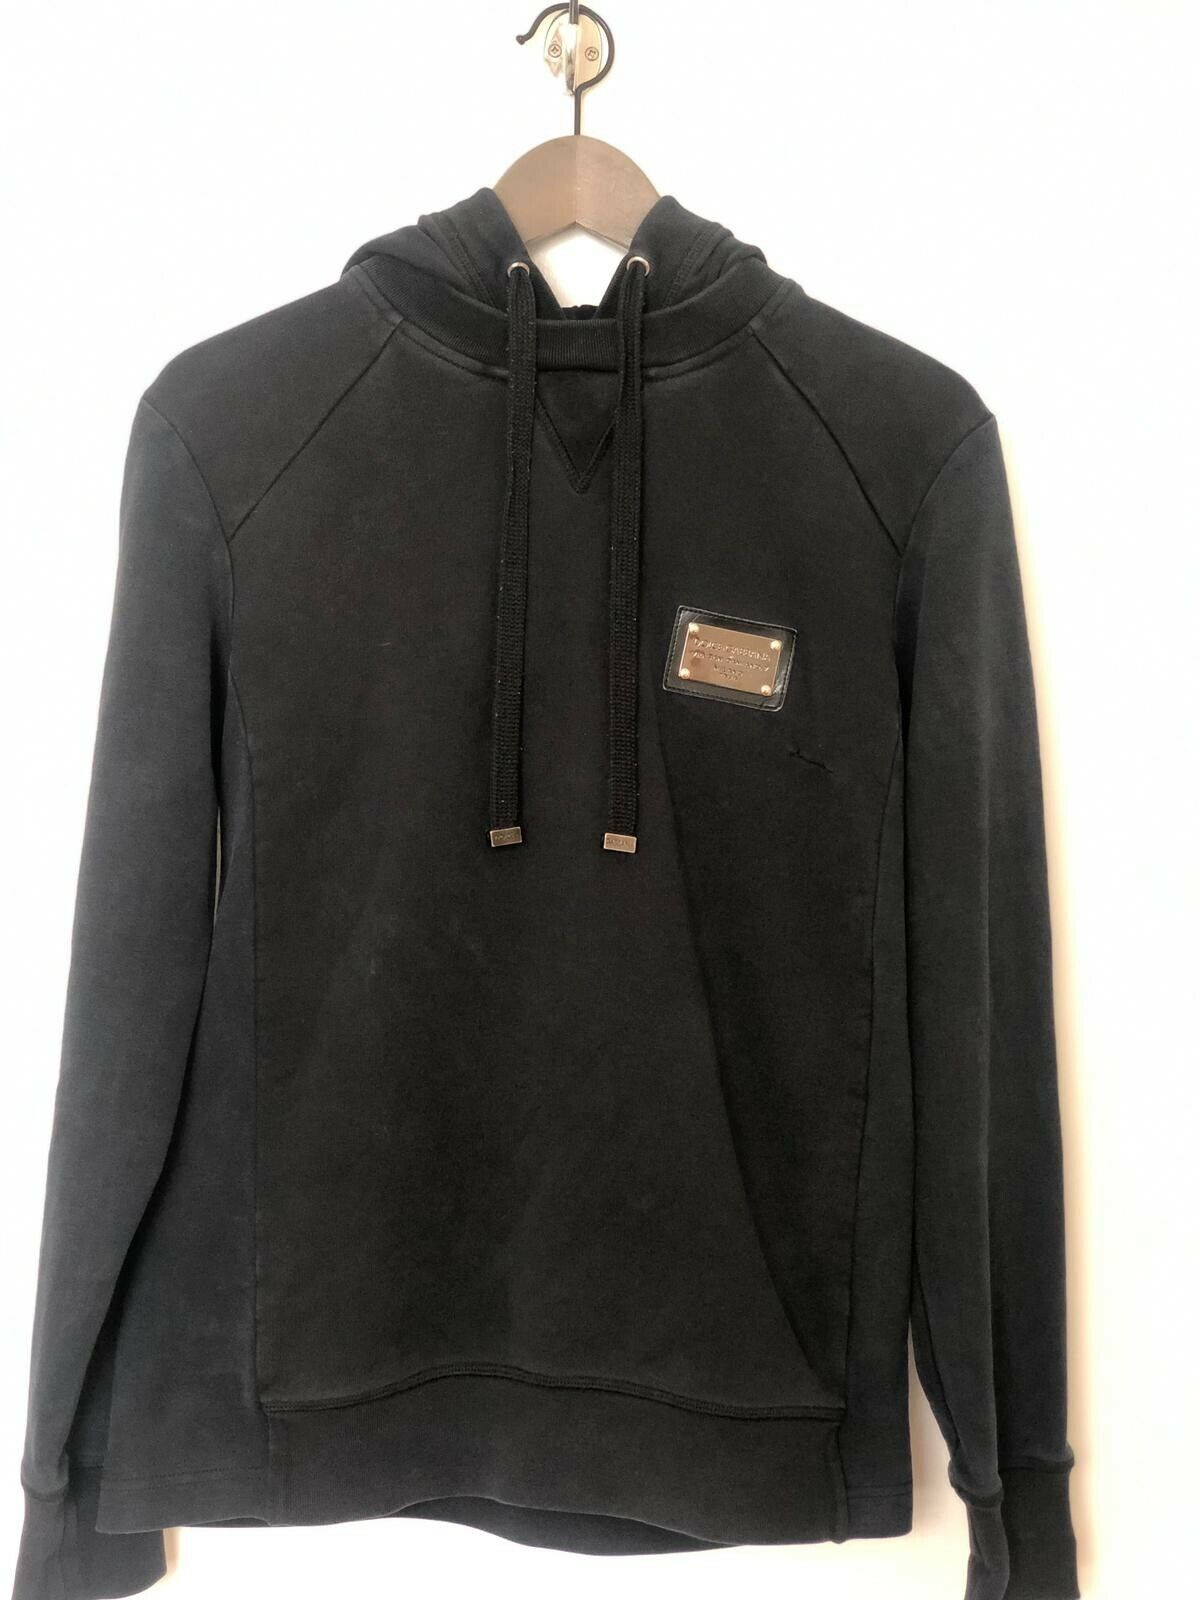 DOLCE & GABBANA HOODIE TWO TONE MAINLINE D&G SIZE 48 MEDIUM USED WITH DEFECT